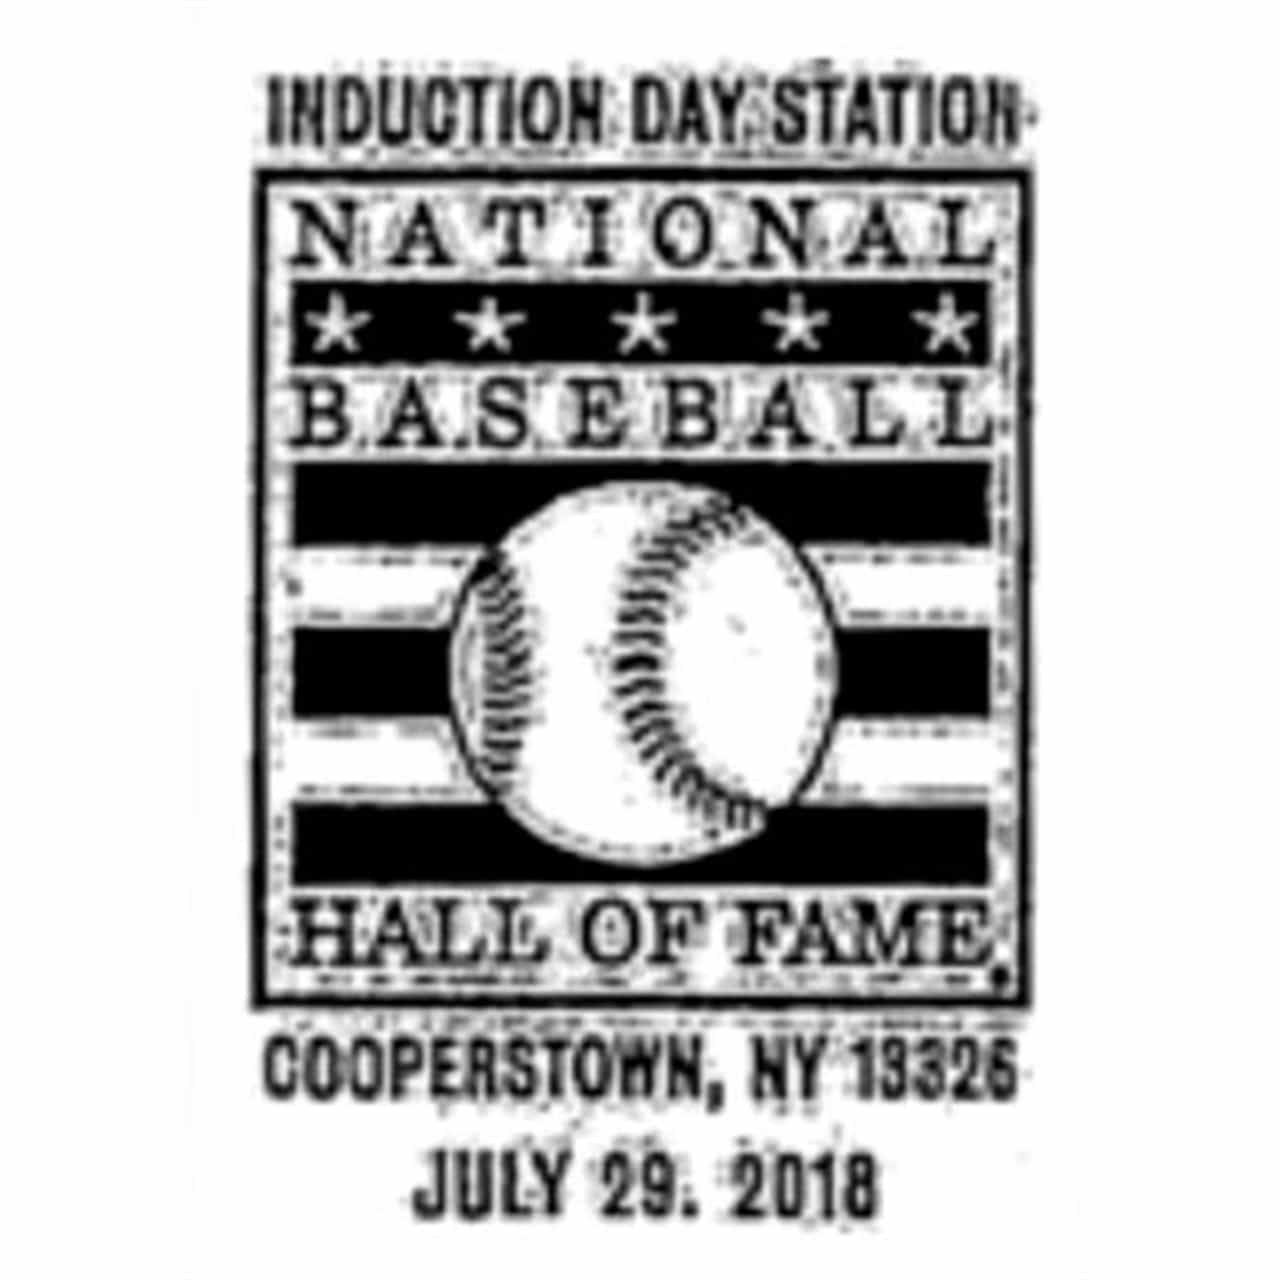 2018 Baseball Hall of Fame Pictorial Postmark